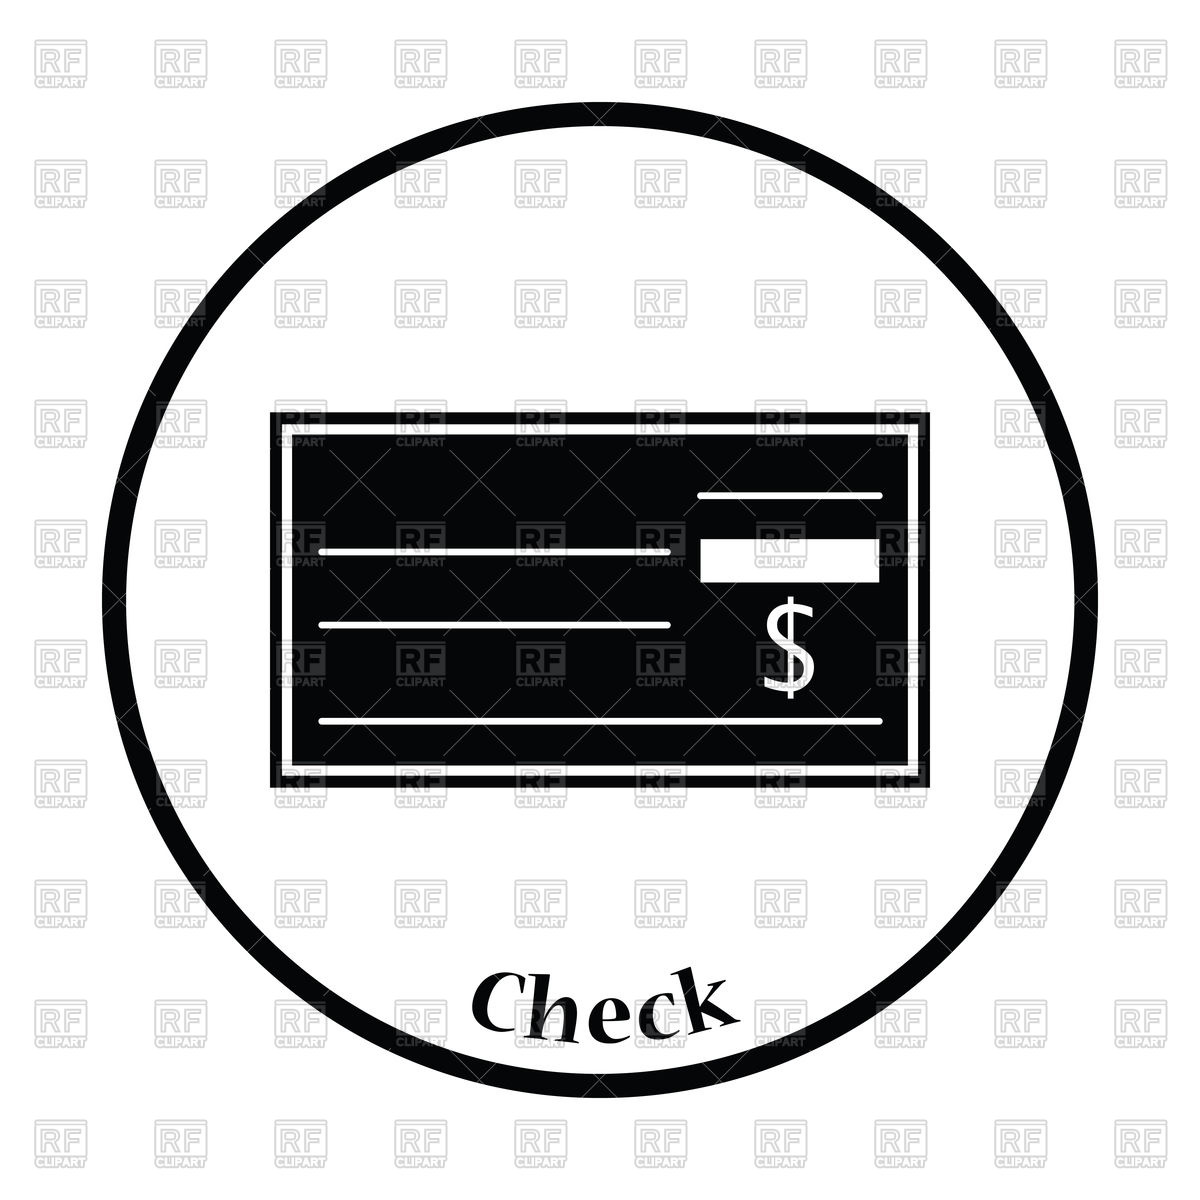 Thin circle design of bank check icon Stock Vector Image.